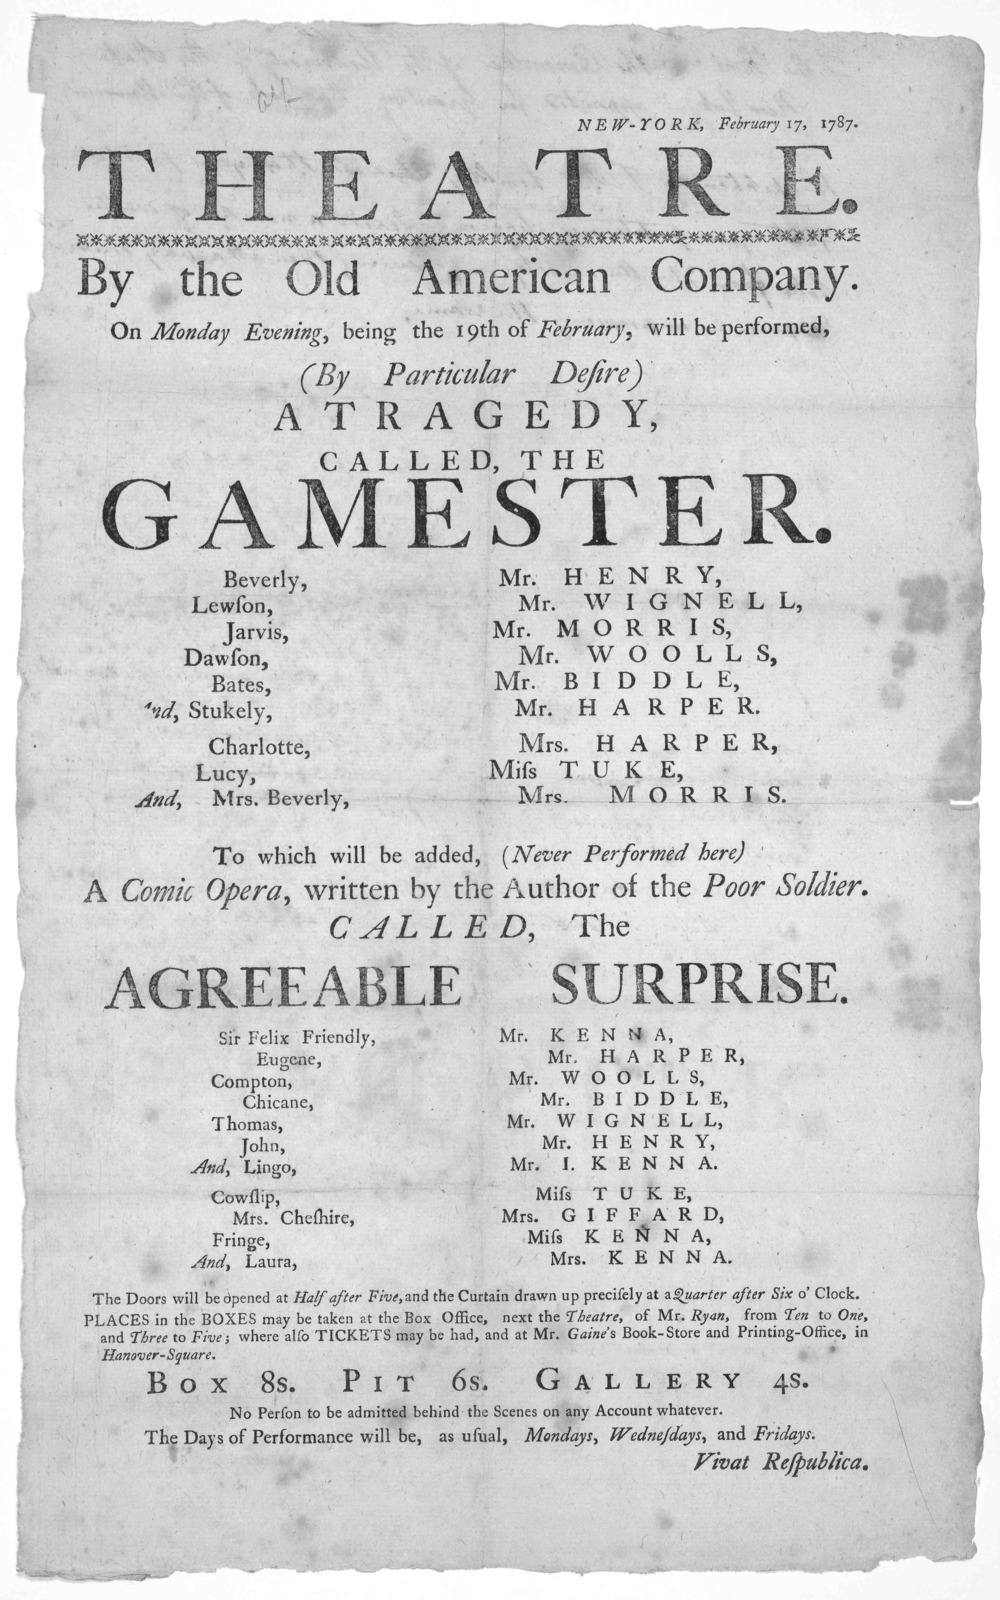 New-York, February 17, 1787. Theatre. By the Old American Company. On Monday evening, being the 19th of February, will be performed (By Particular desire) A tragedy called the Gamester ... [New York, 1787].